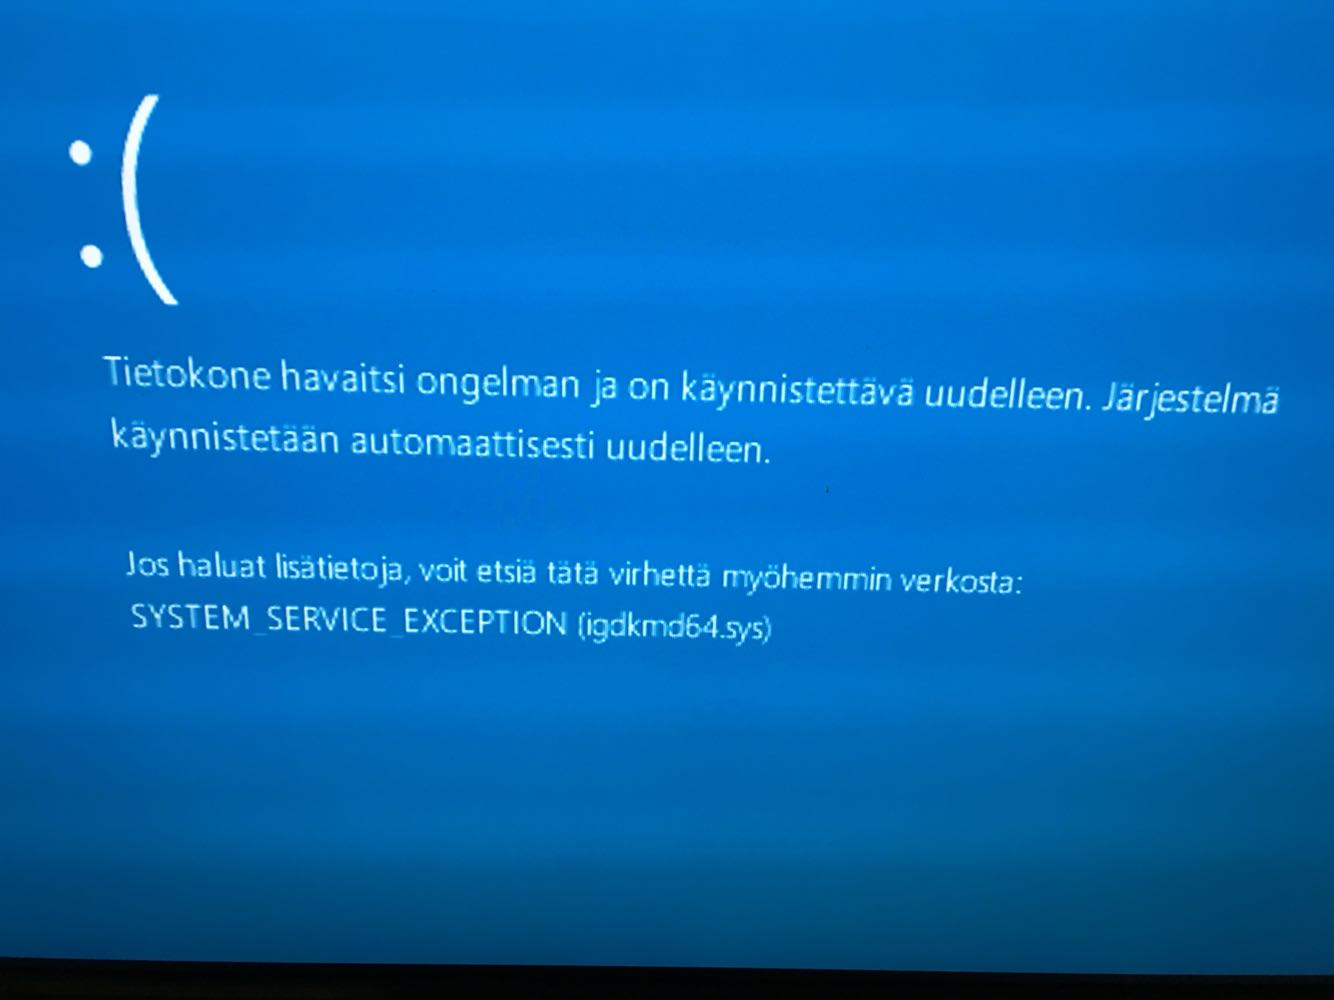 Updated camera driver SPUVCBv_x64.sys in Windows 10 2004 is causing a SYSTEM_SERVICE_EXCEPTION KdX1s.jpg